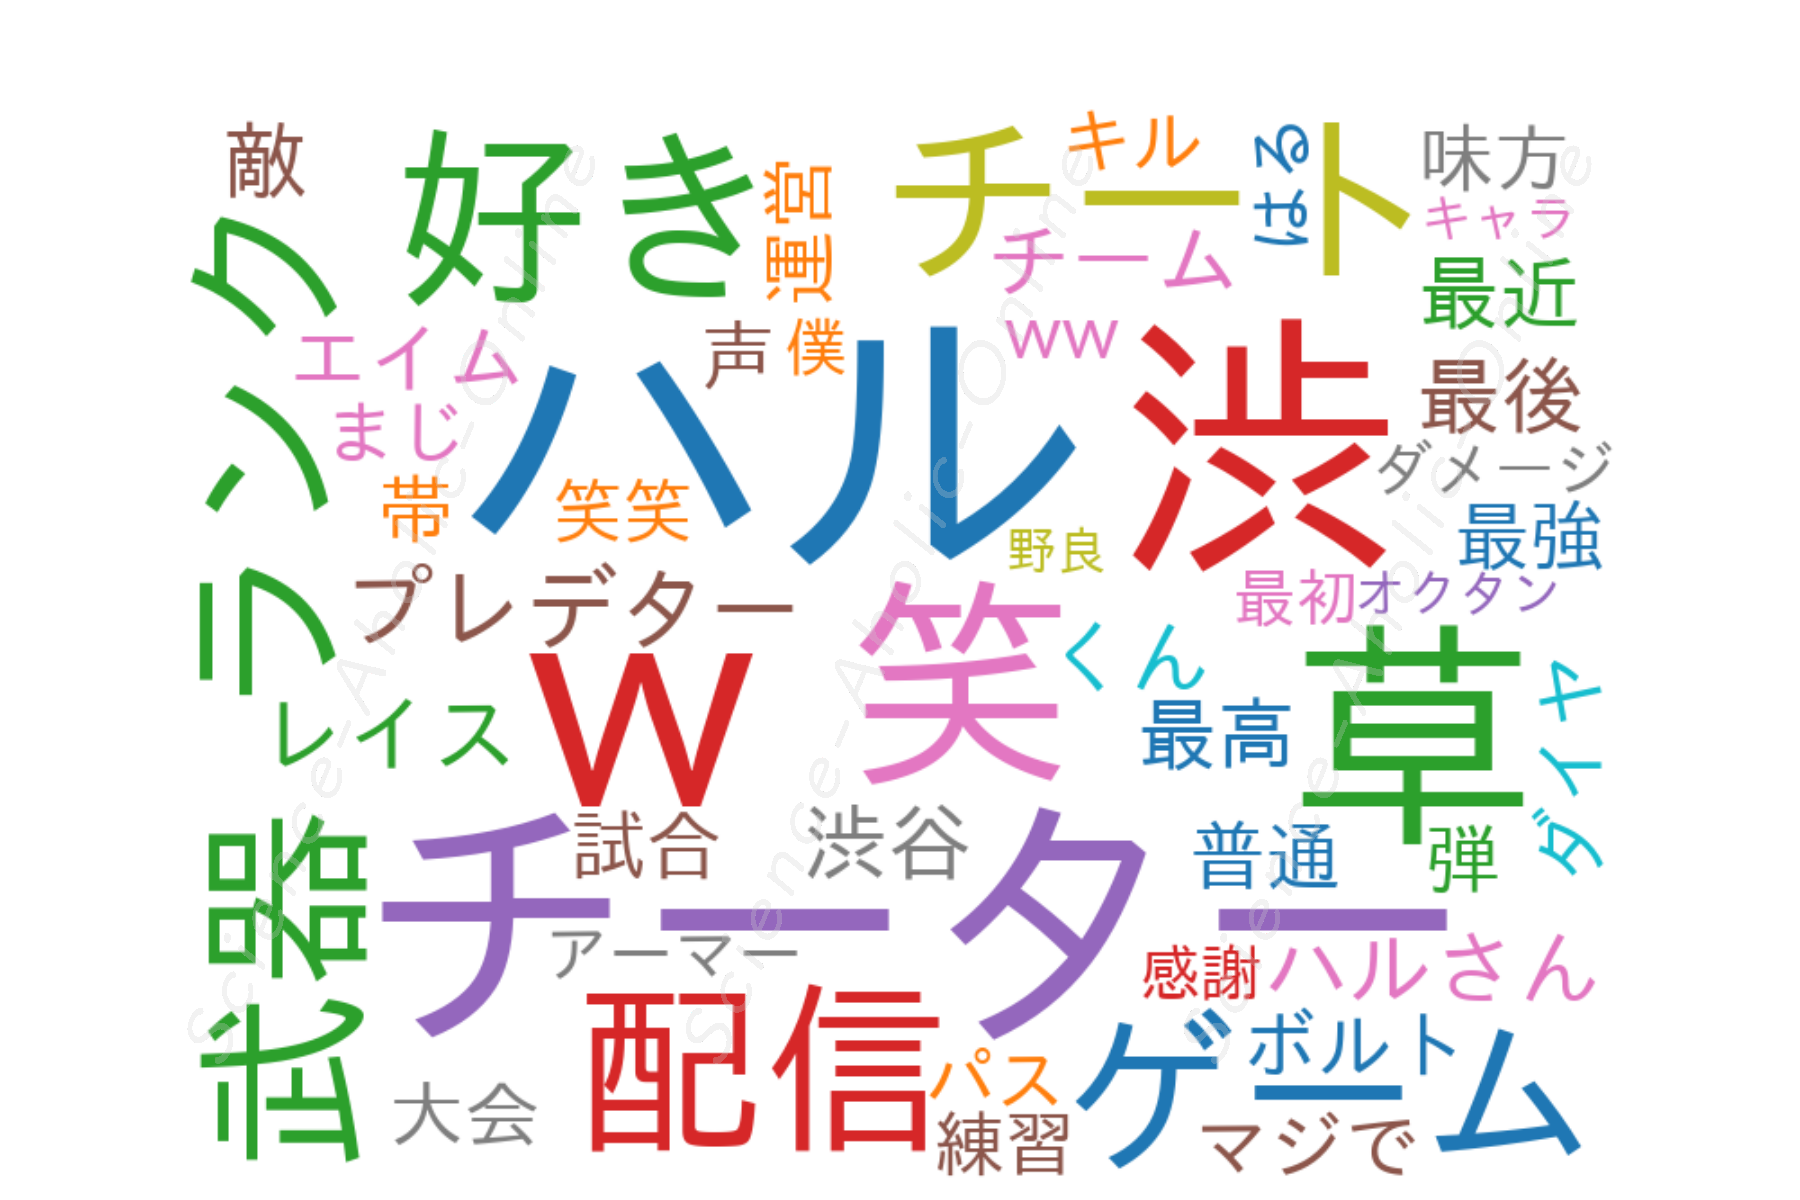 https://science-aholic-online.com/wp-content/uploads/2020/08/wordcloud_渋谷ハル.png